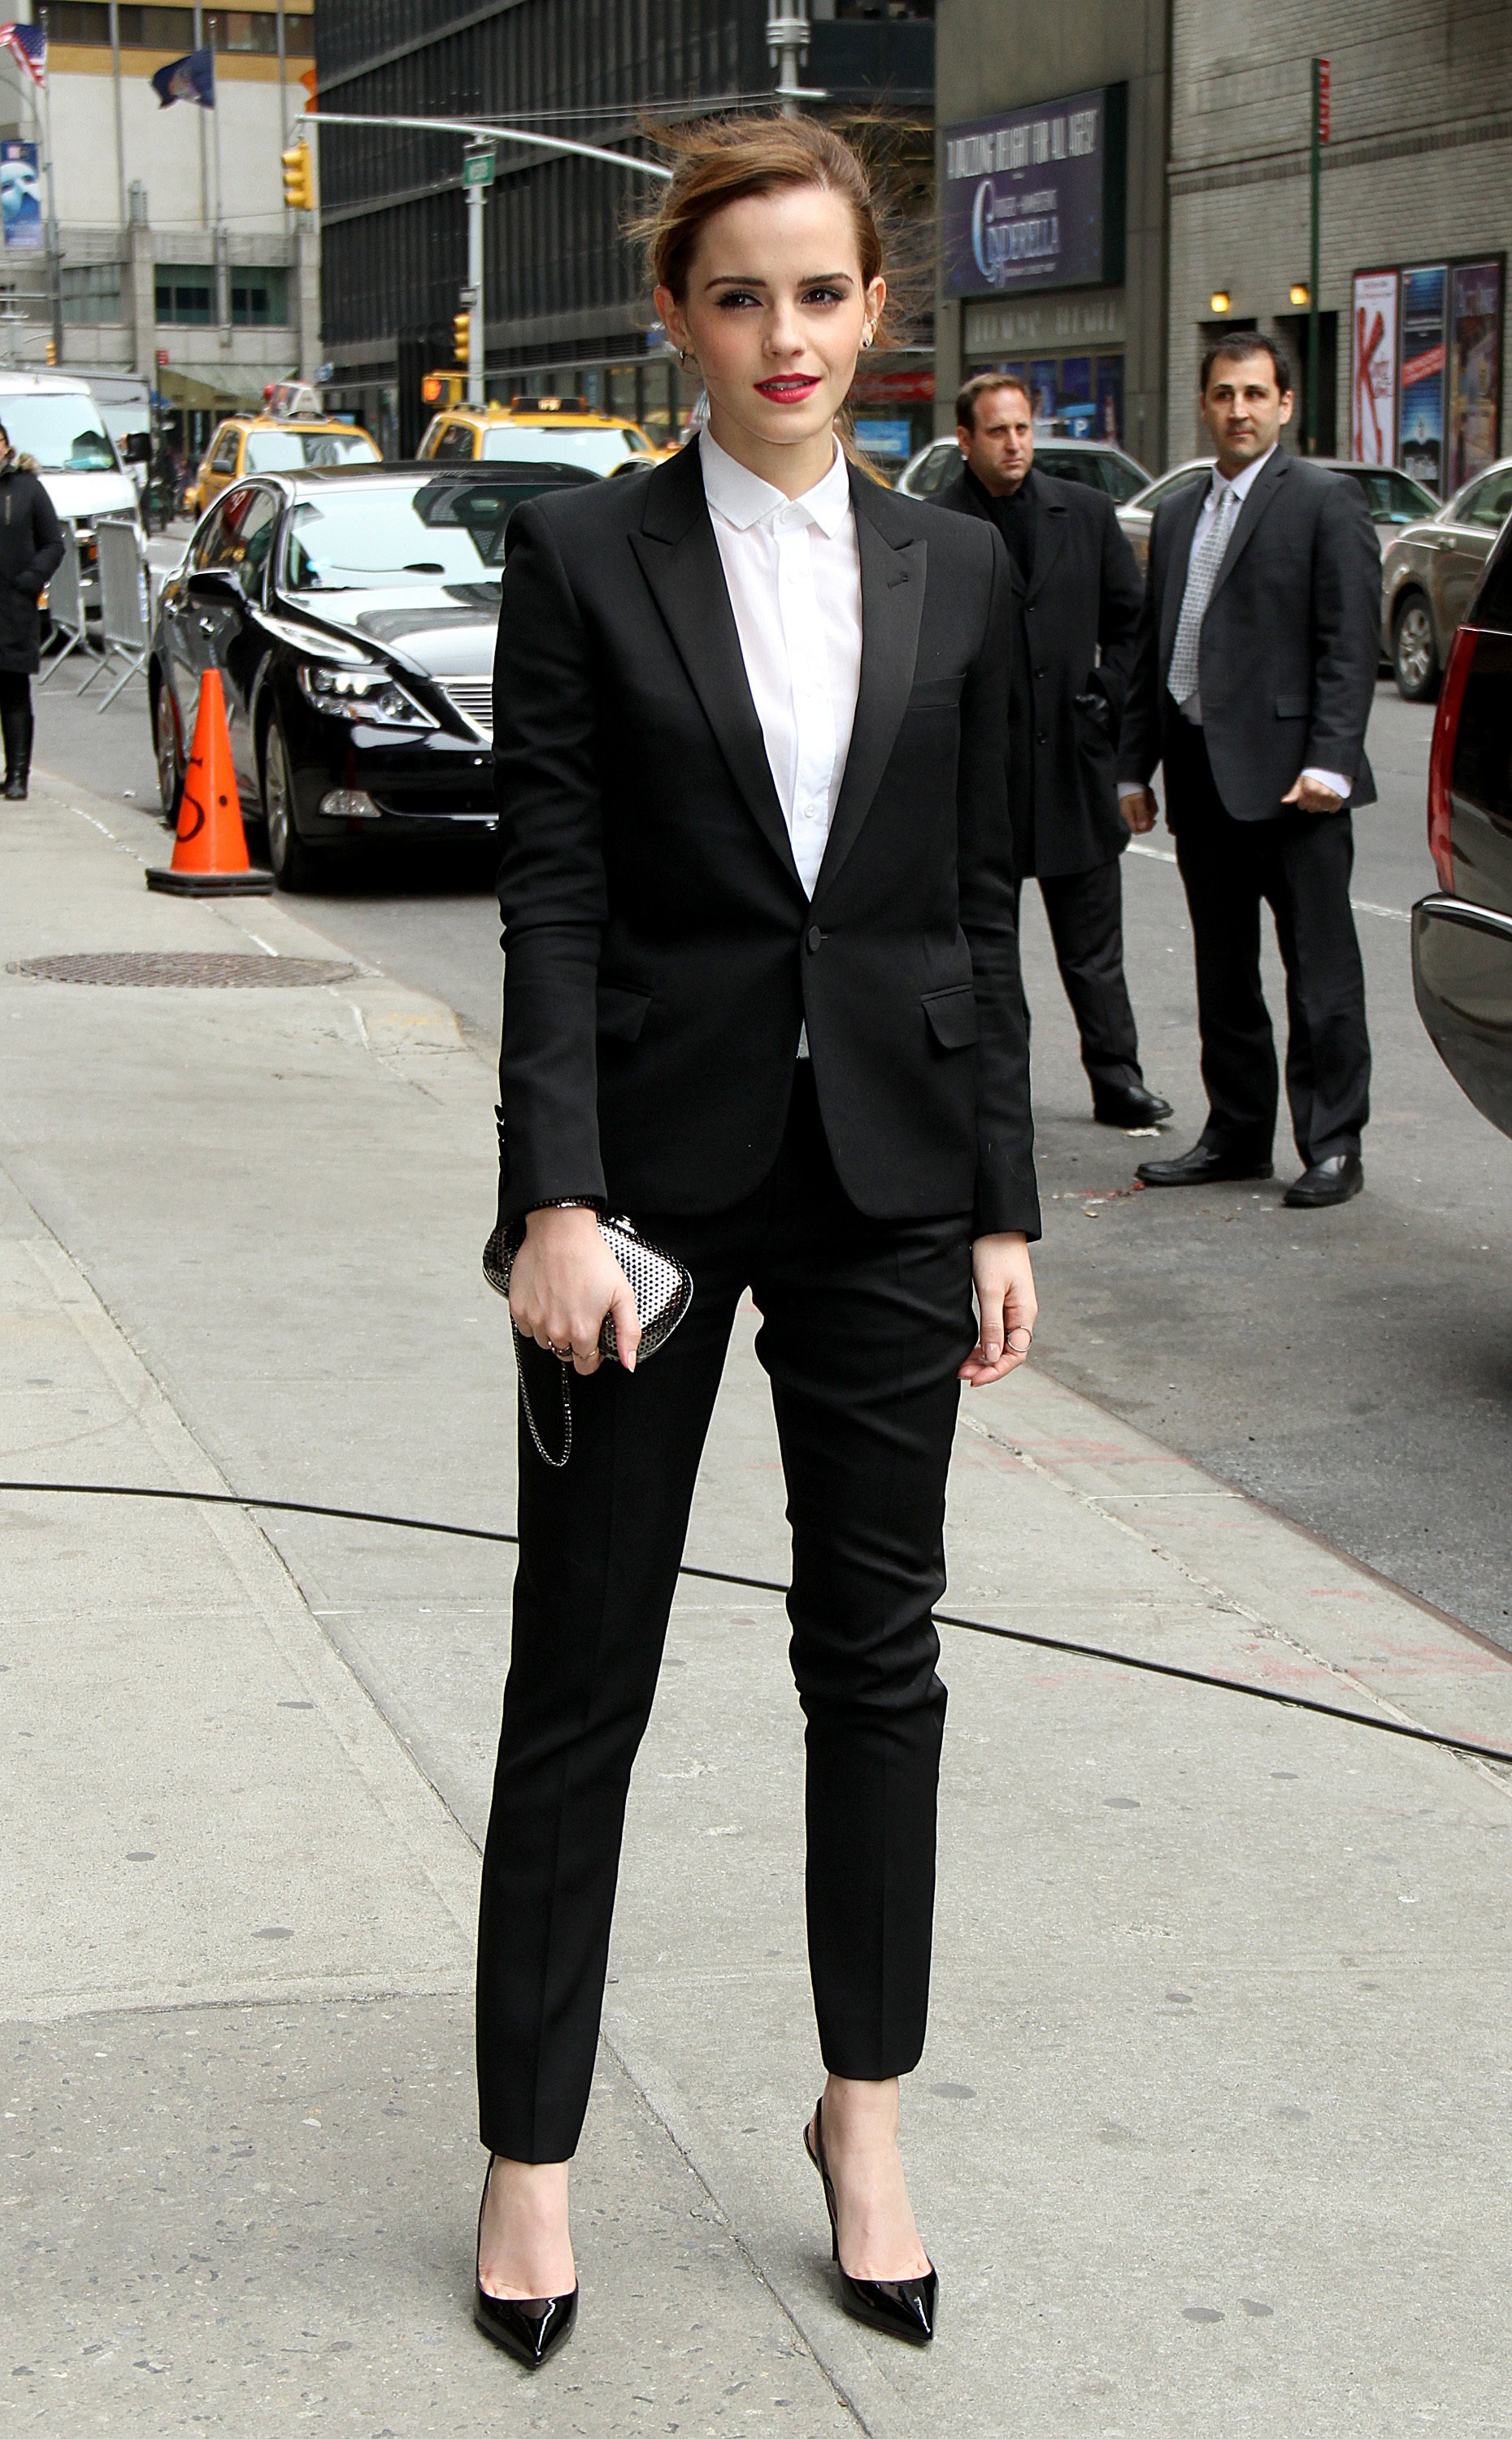 Just 15 Photos Of Women Wearing Suits Which Show That They Should Be Best Left To Men